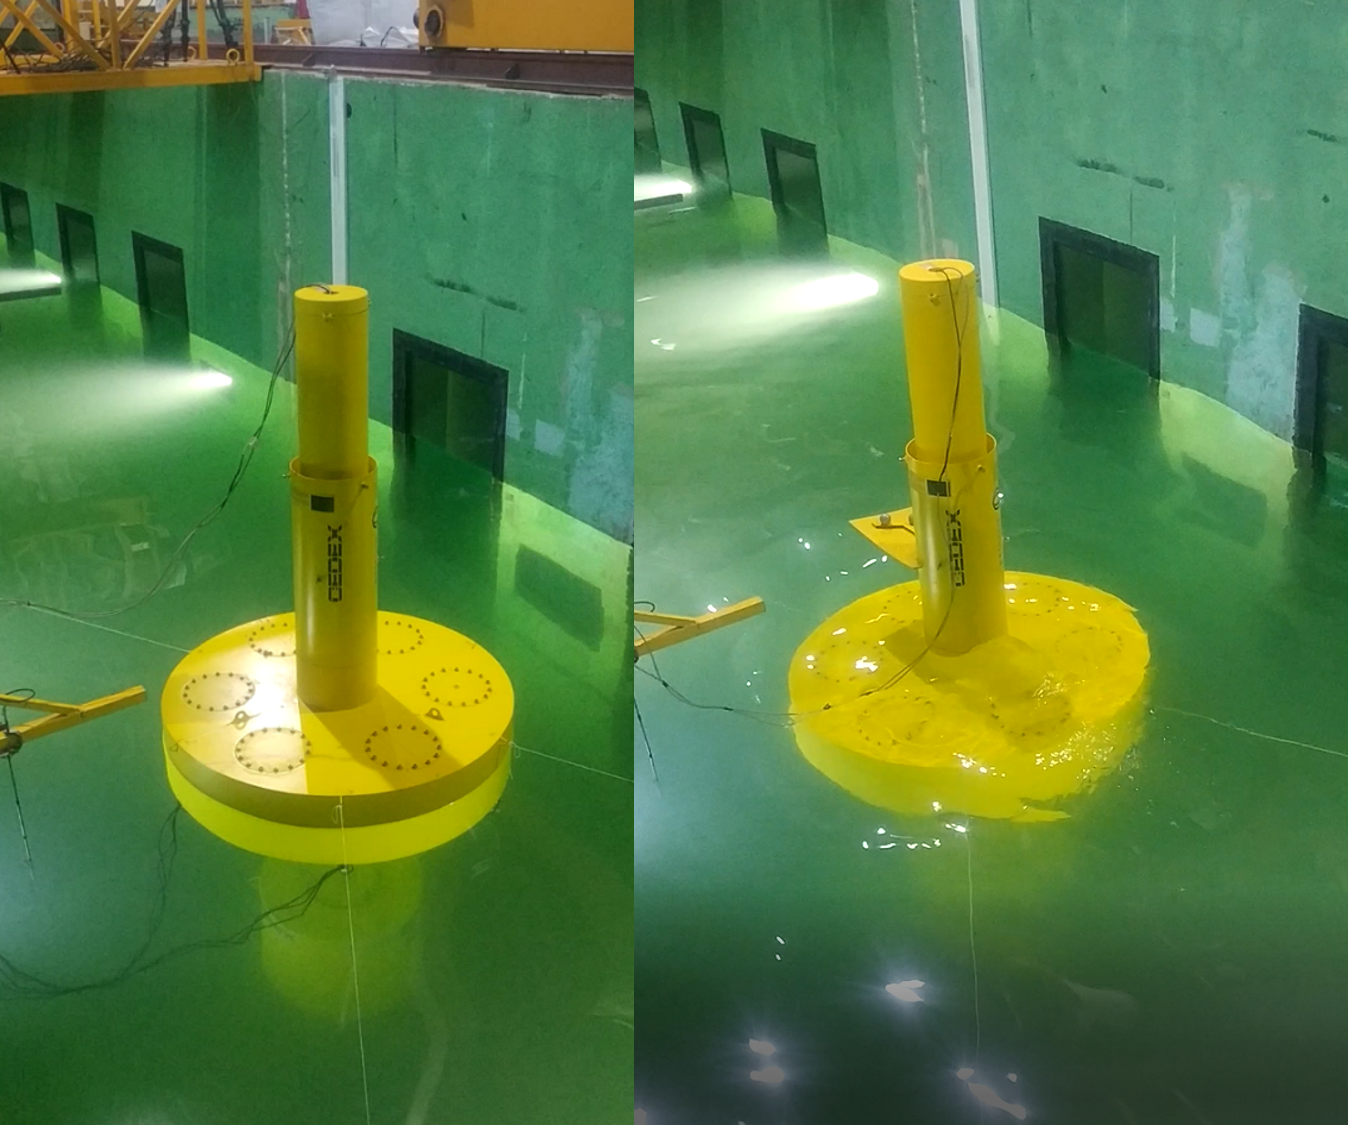 TELWIND OFFSHORE INSTALLATION TANK TESTS COMPLETED